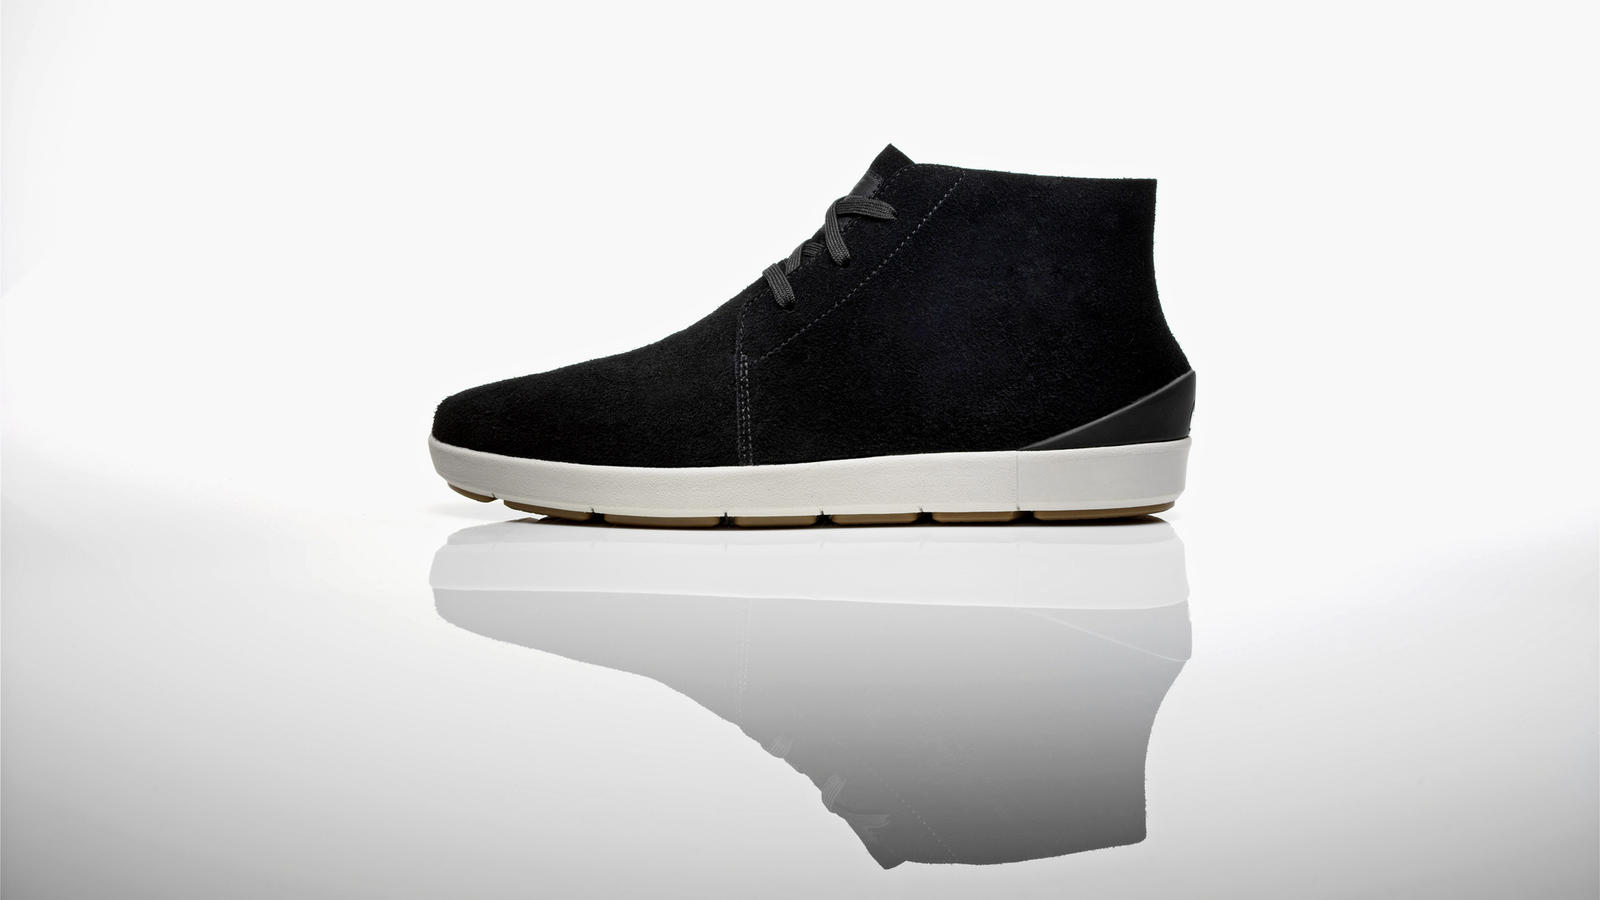 finest selection 2a7aa 3aa12 NIKE AIR RALSTON MID LITE